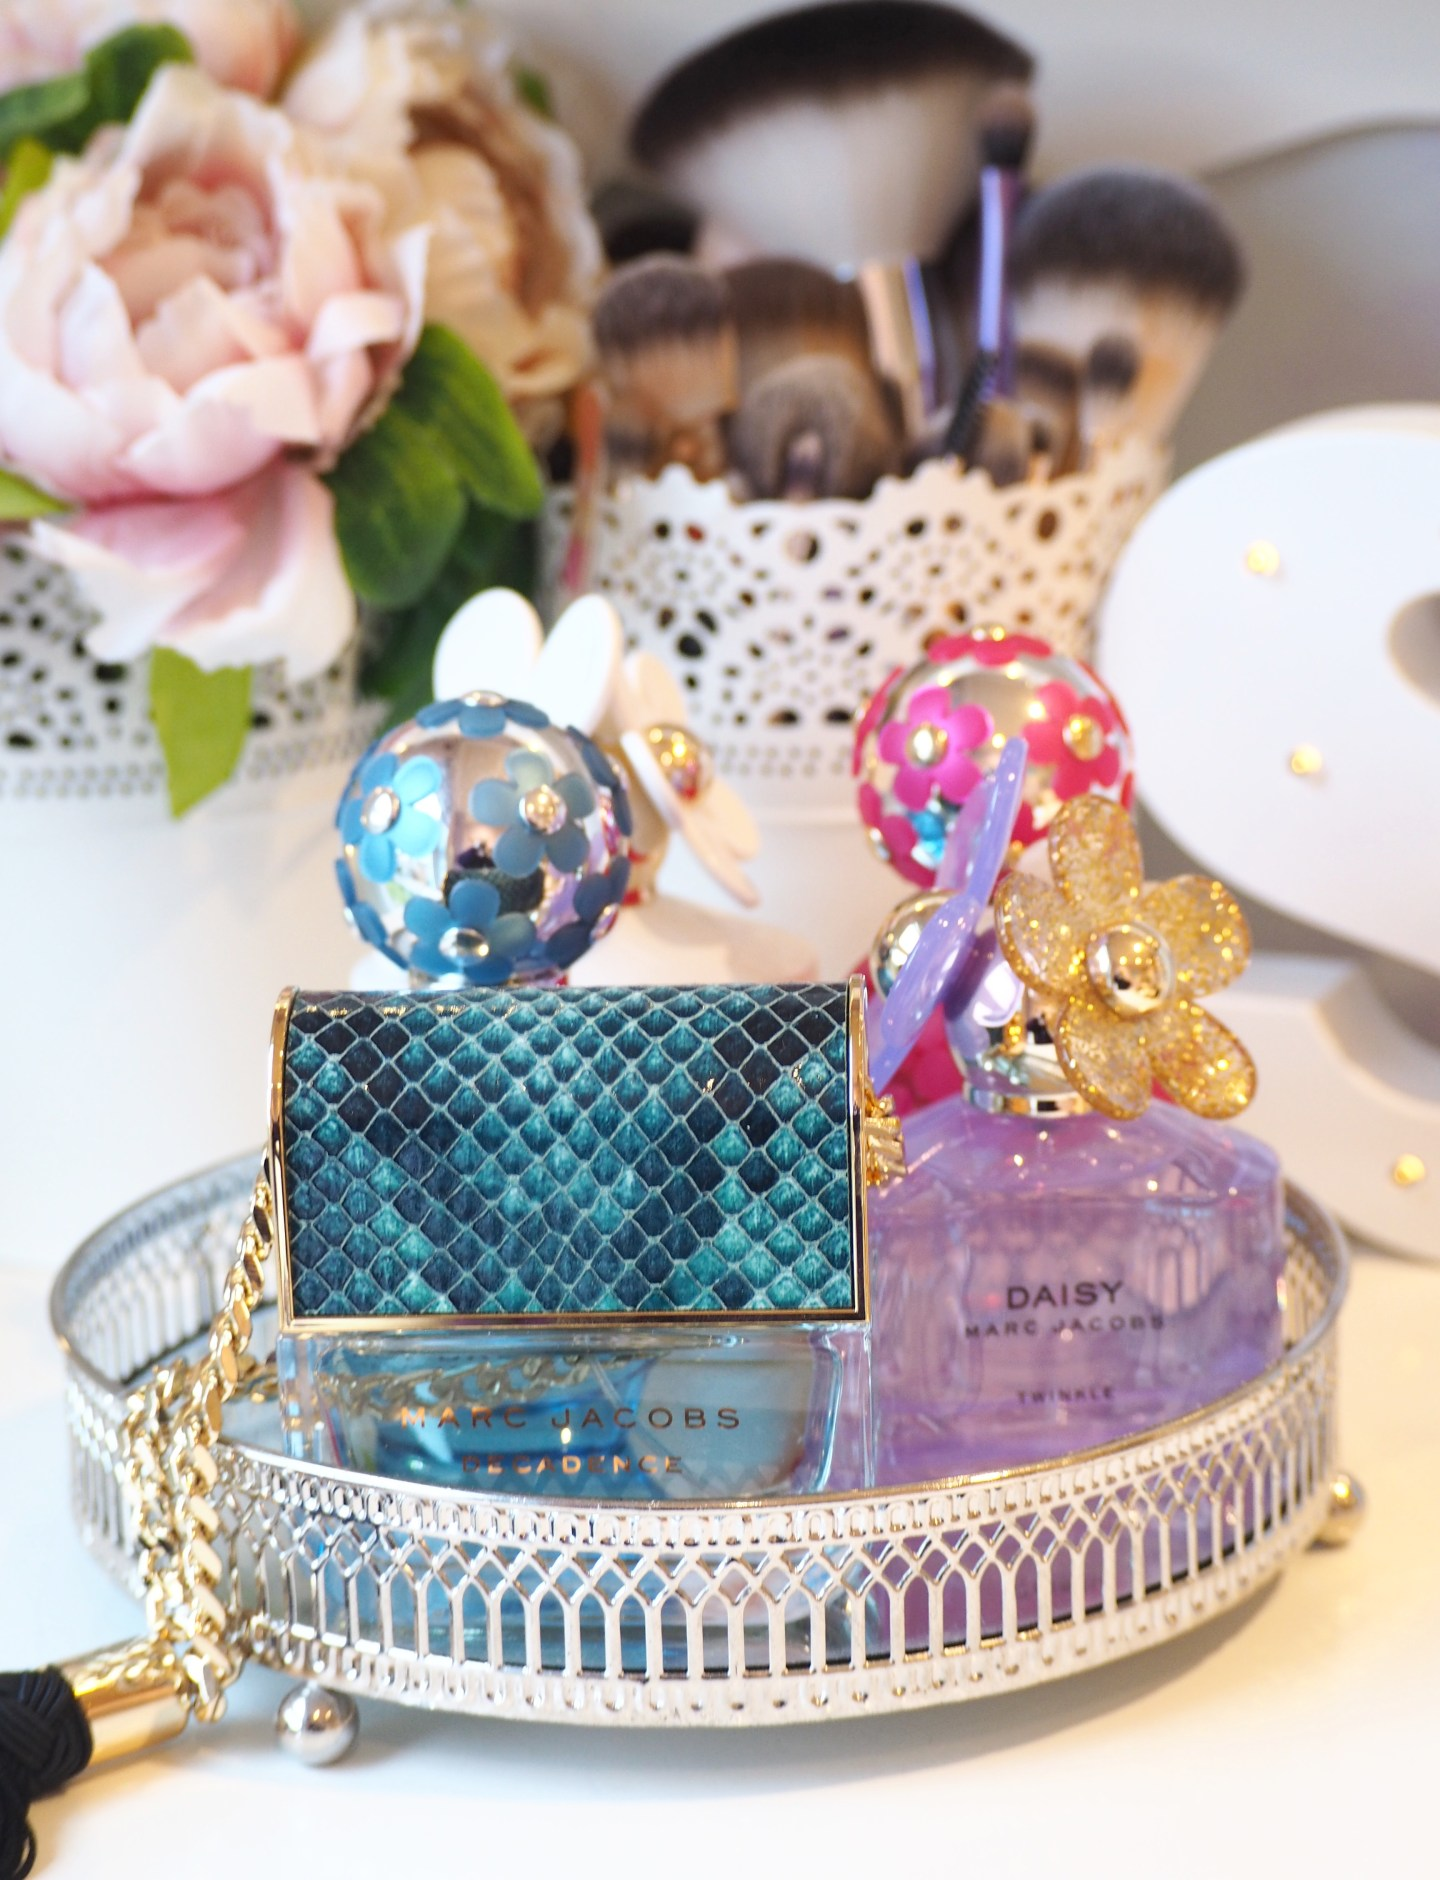 marc jacobs perfume collection